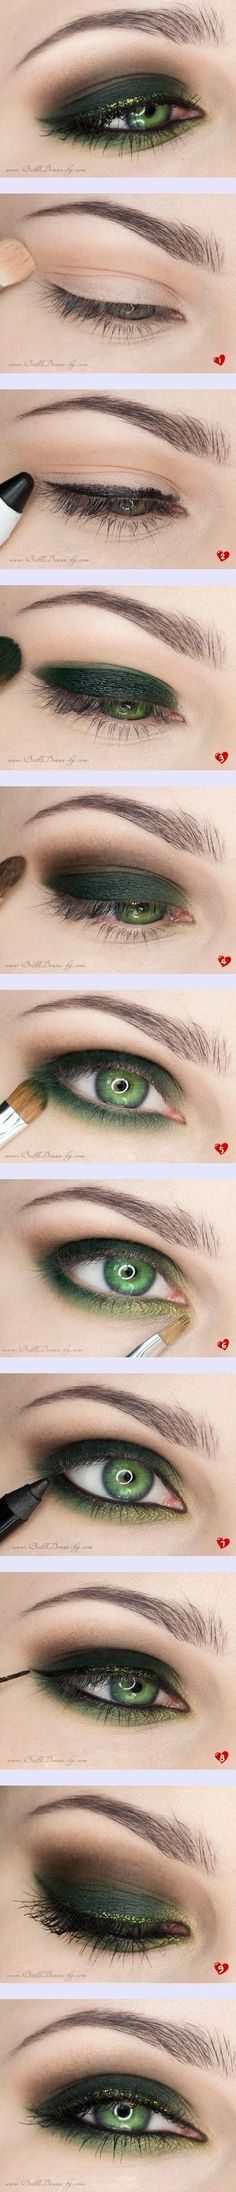 I bet this look look awesome in blue too!   #makeup